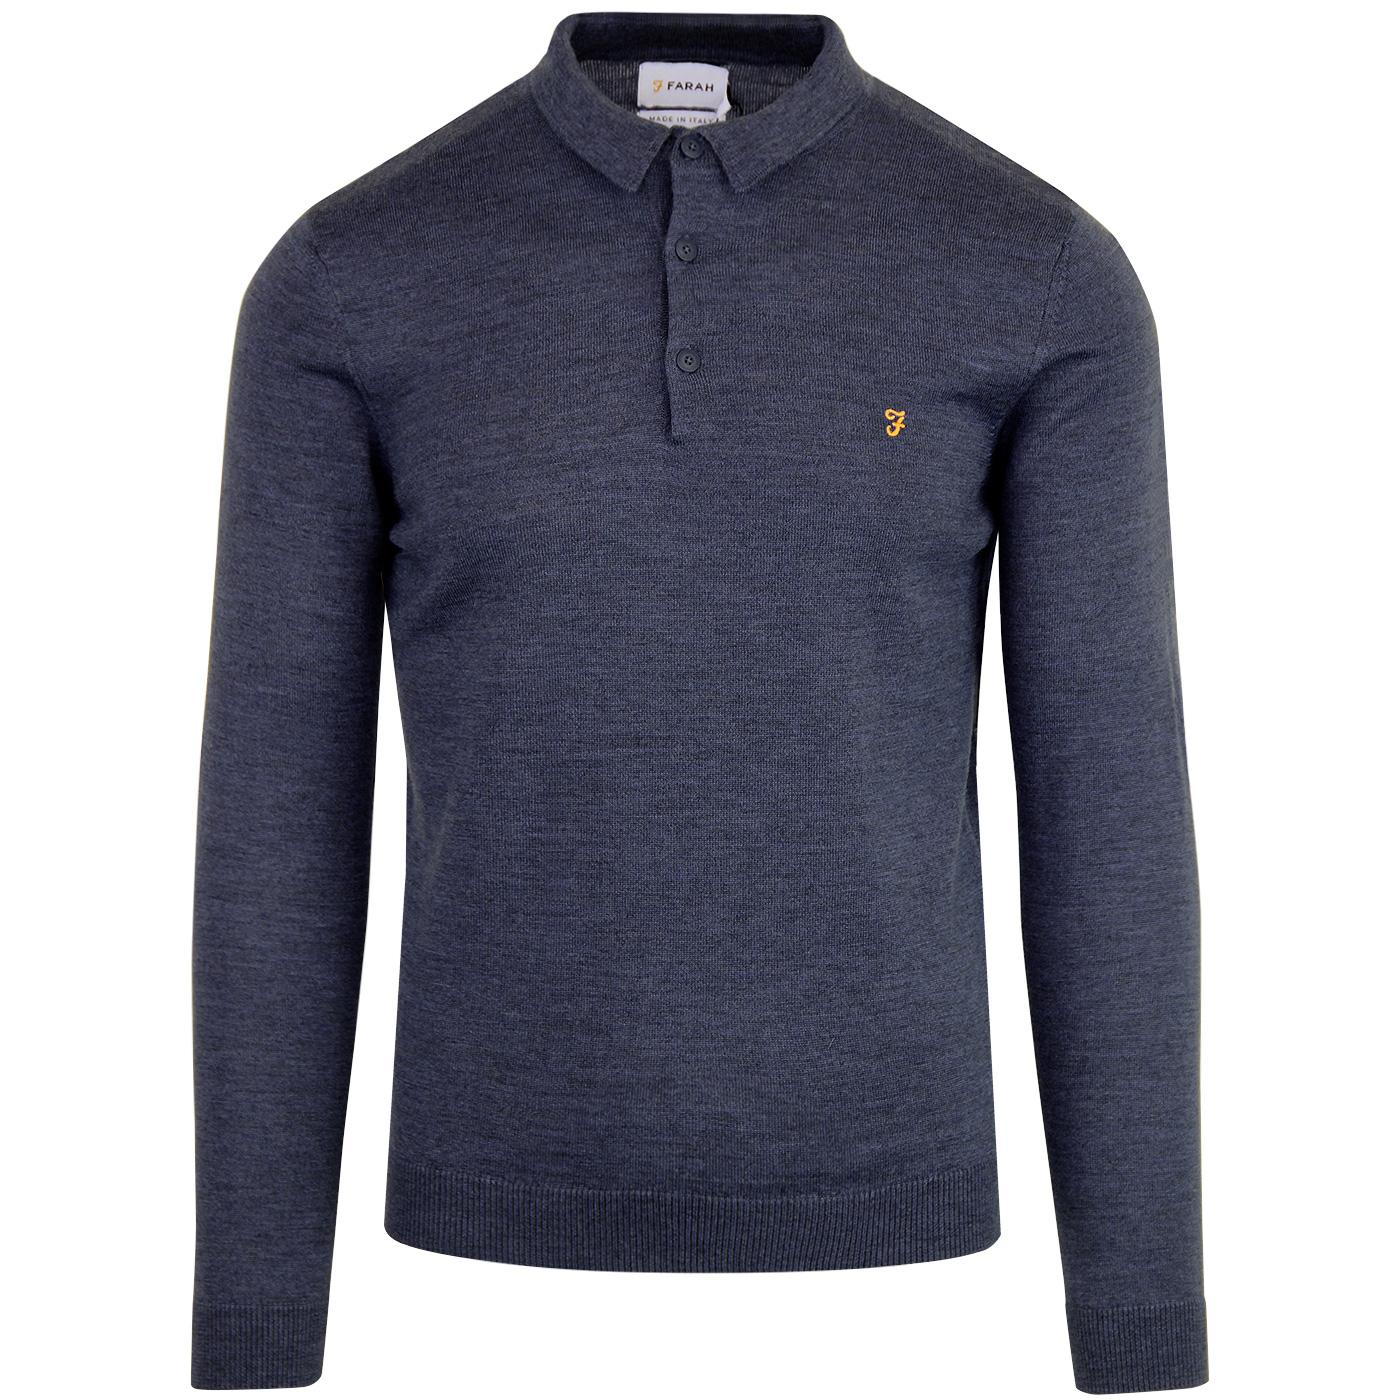 Maidwell FARAH 60s Mod Knitted Wool Polo BLUE MARL